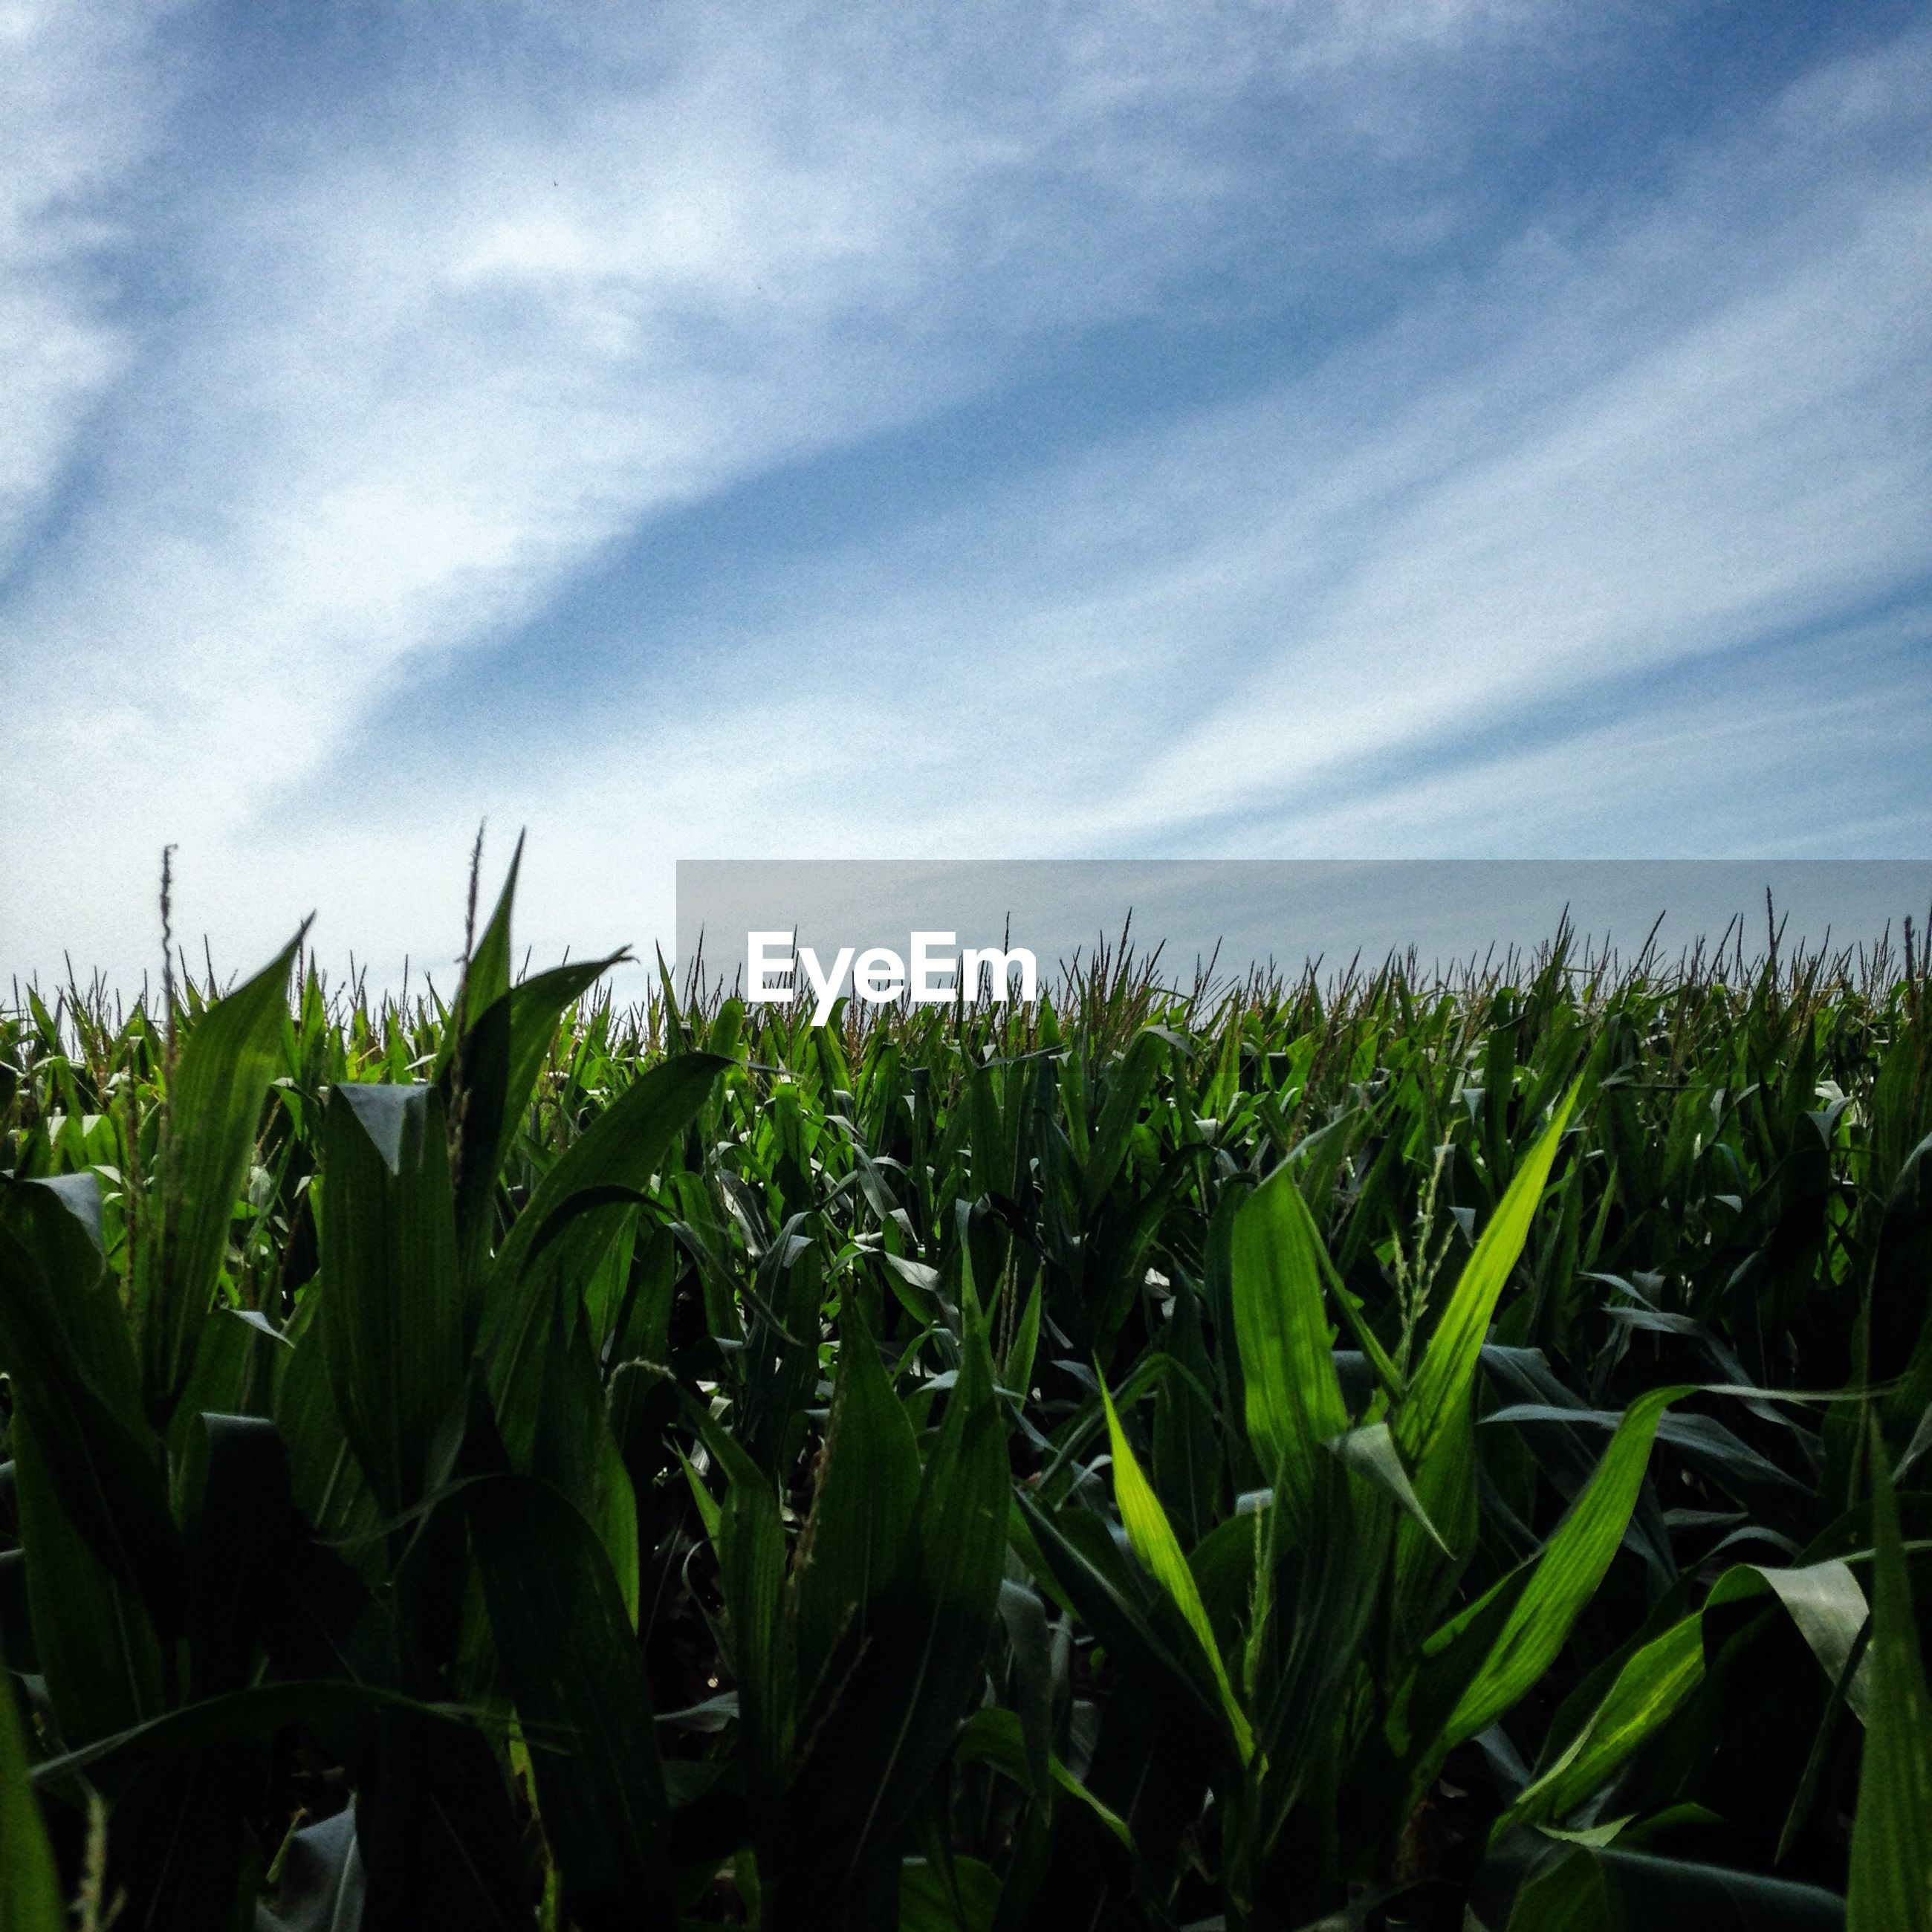 High angle view of crops growing on field against cloudy sky